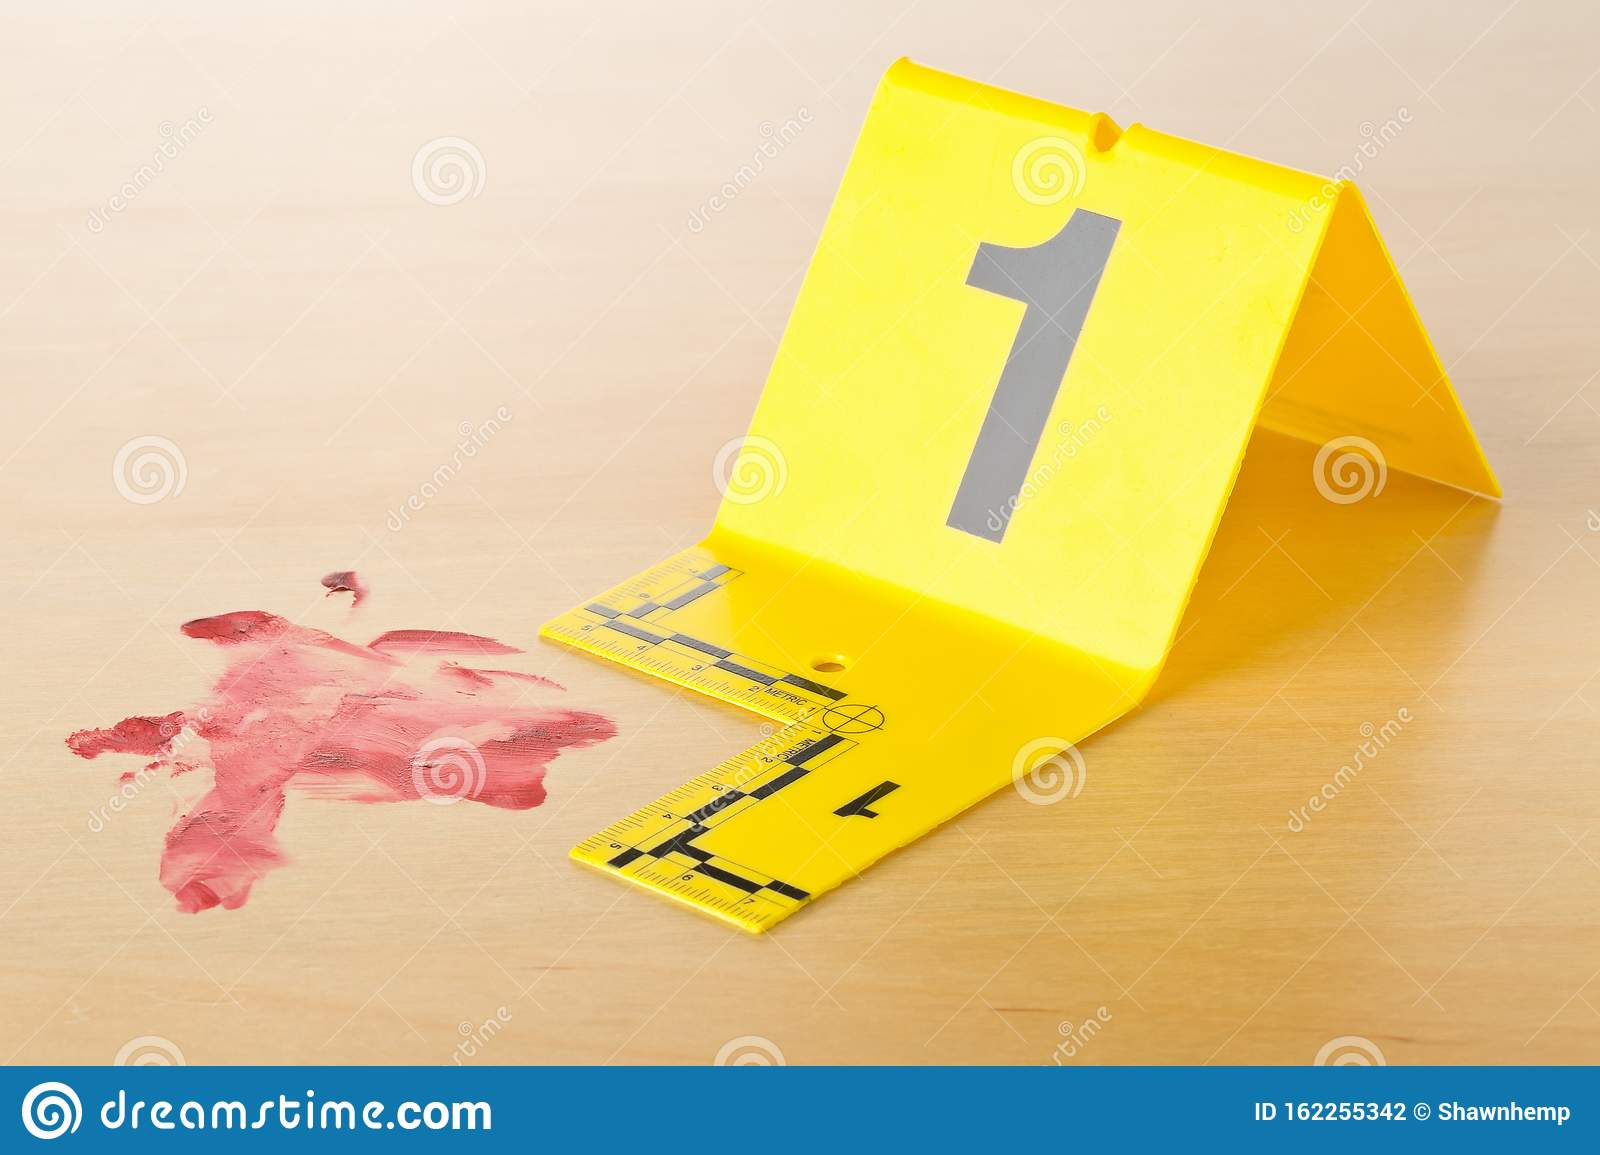 Crime Scene Investigation Csi Evidence Marker With Blood Spot On Wood Floor Background At Crime Scene Police Evidence Or Stock Photo Image Of Killed Security 162255342